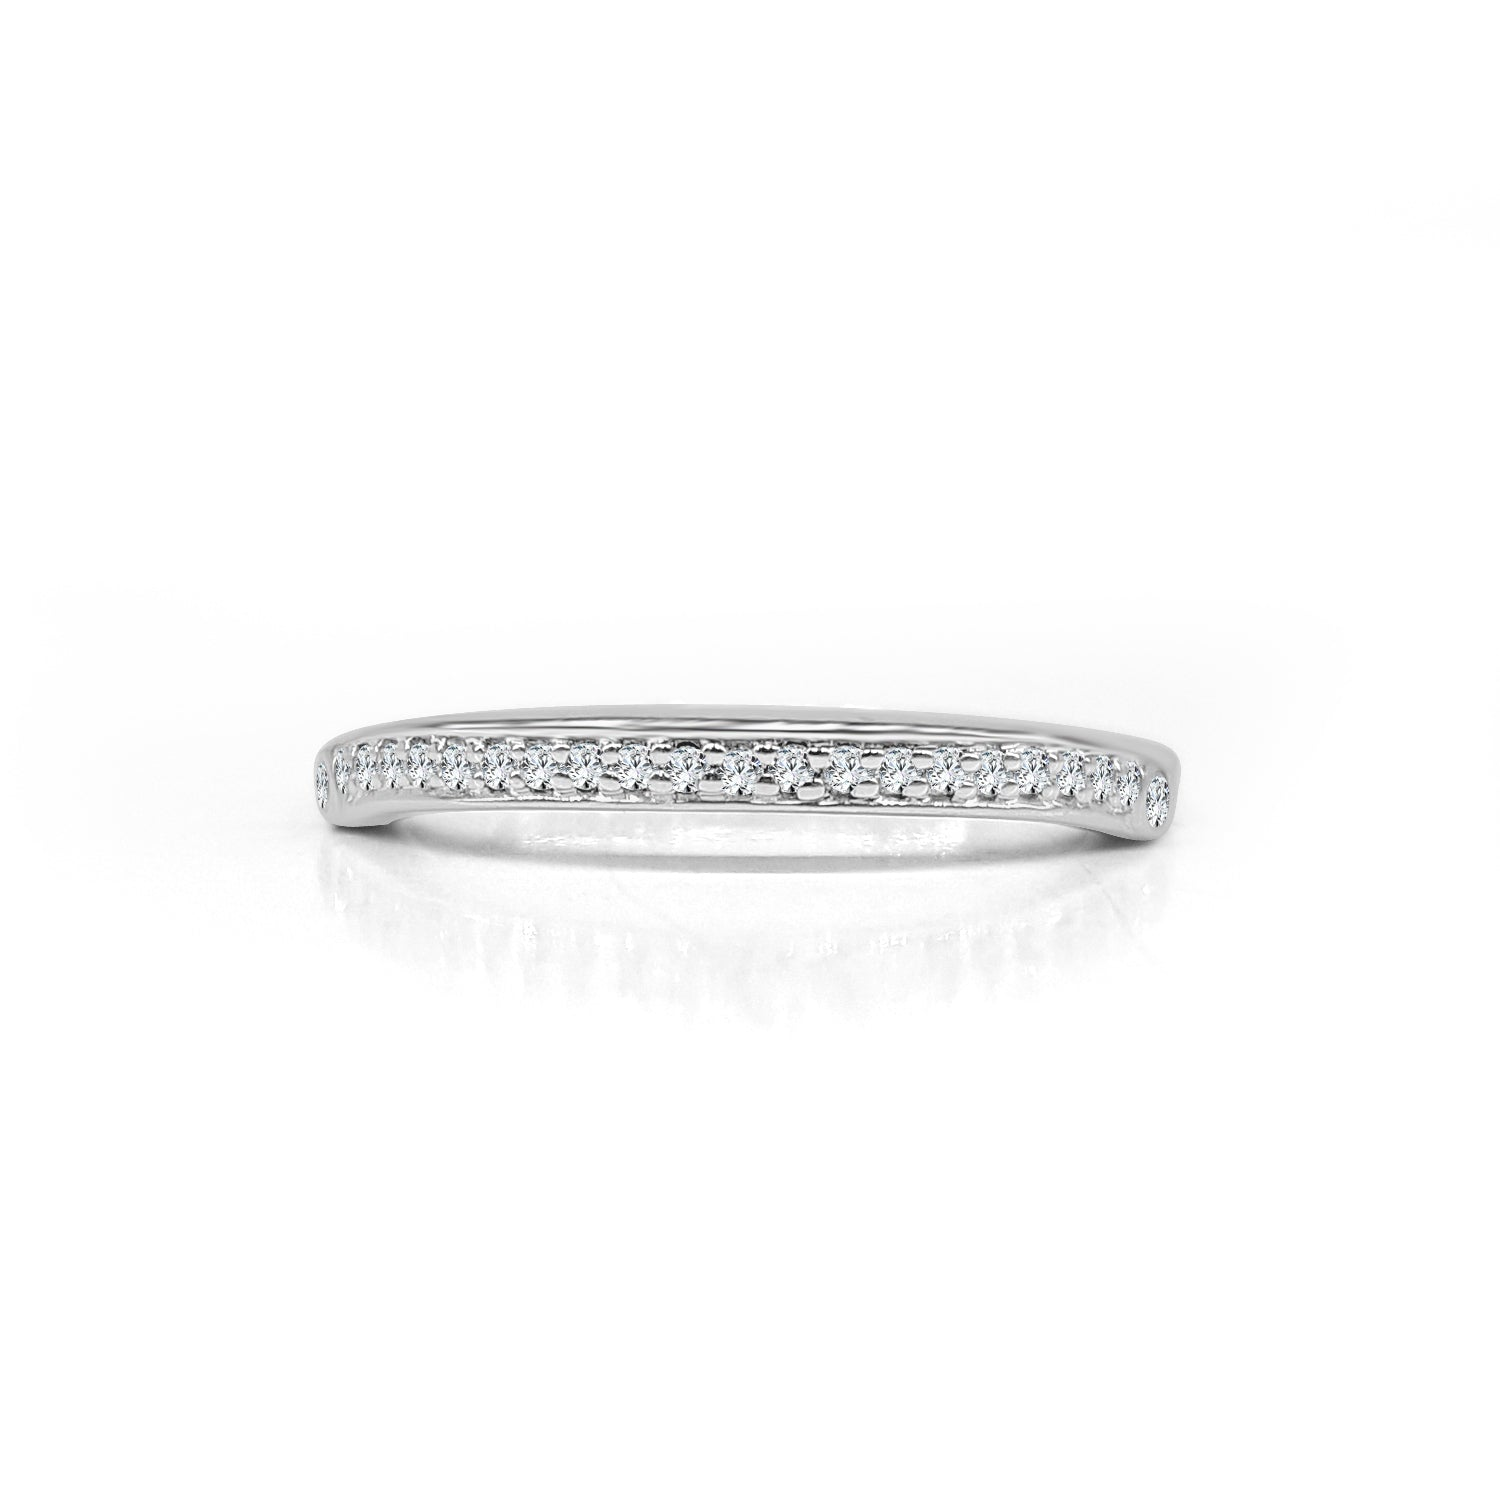 Round Bead Set Diamonds And Diamond Bezel Set Wedding Band